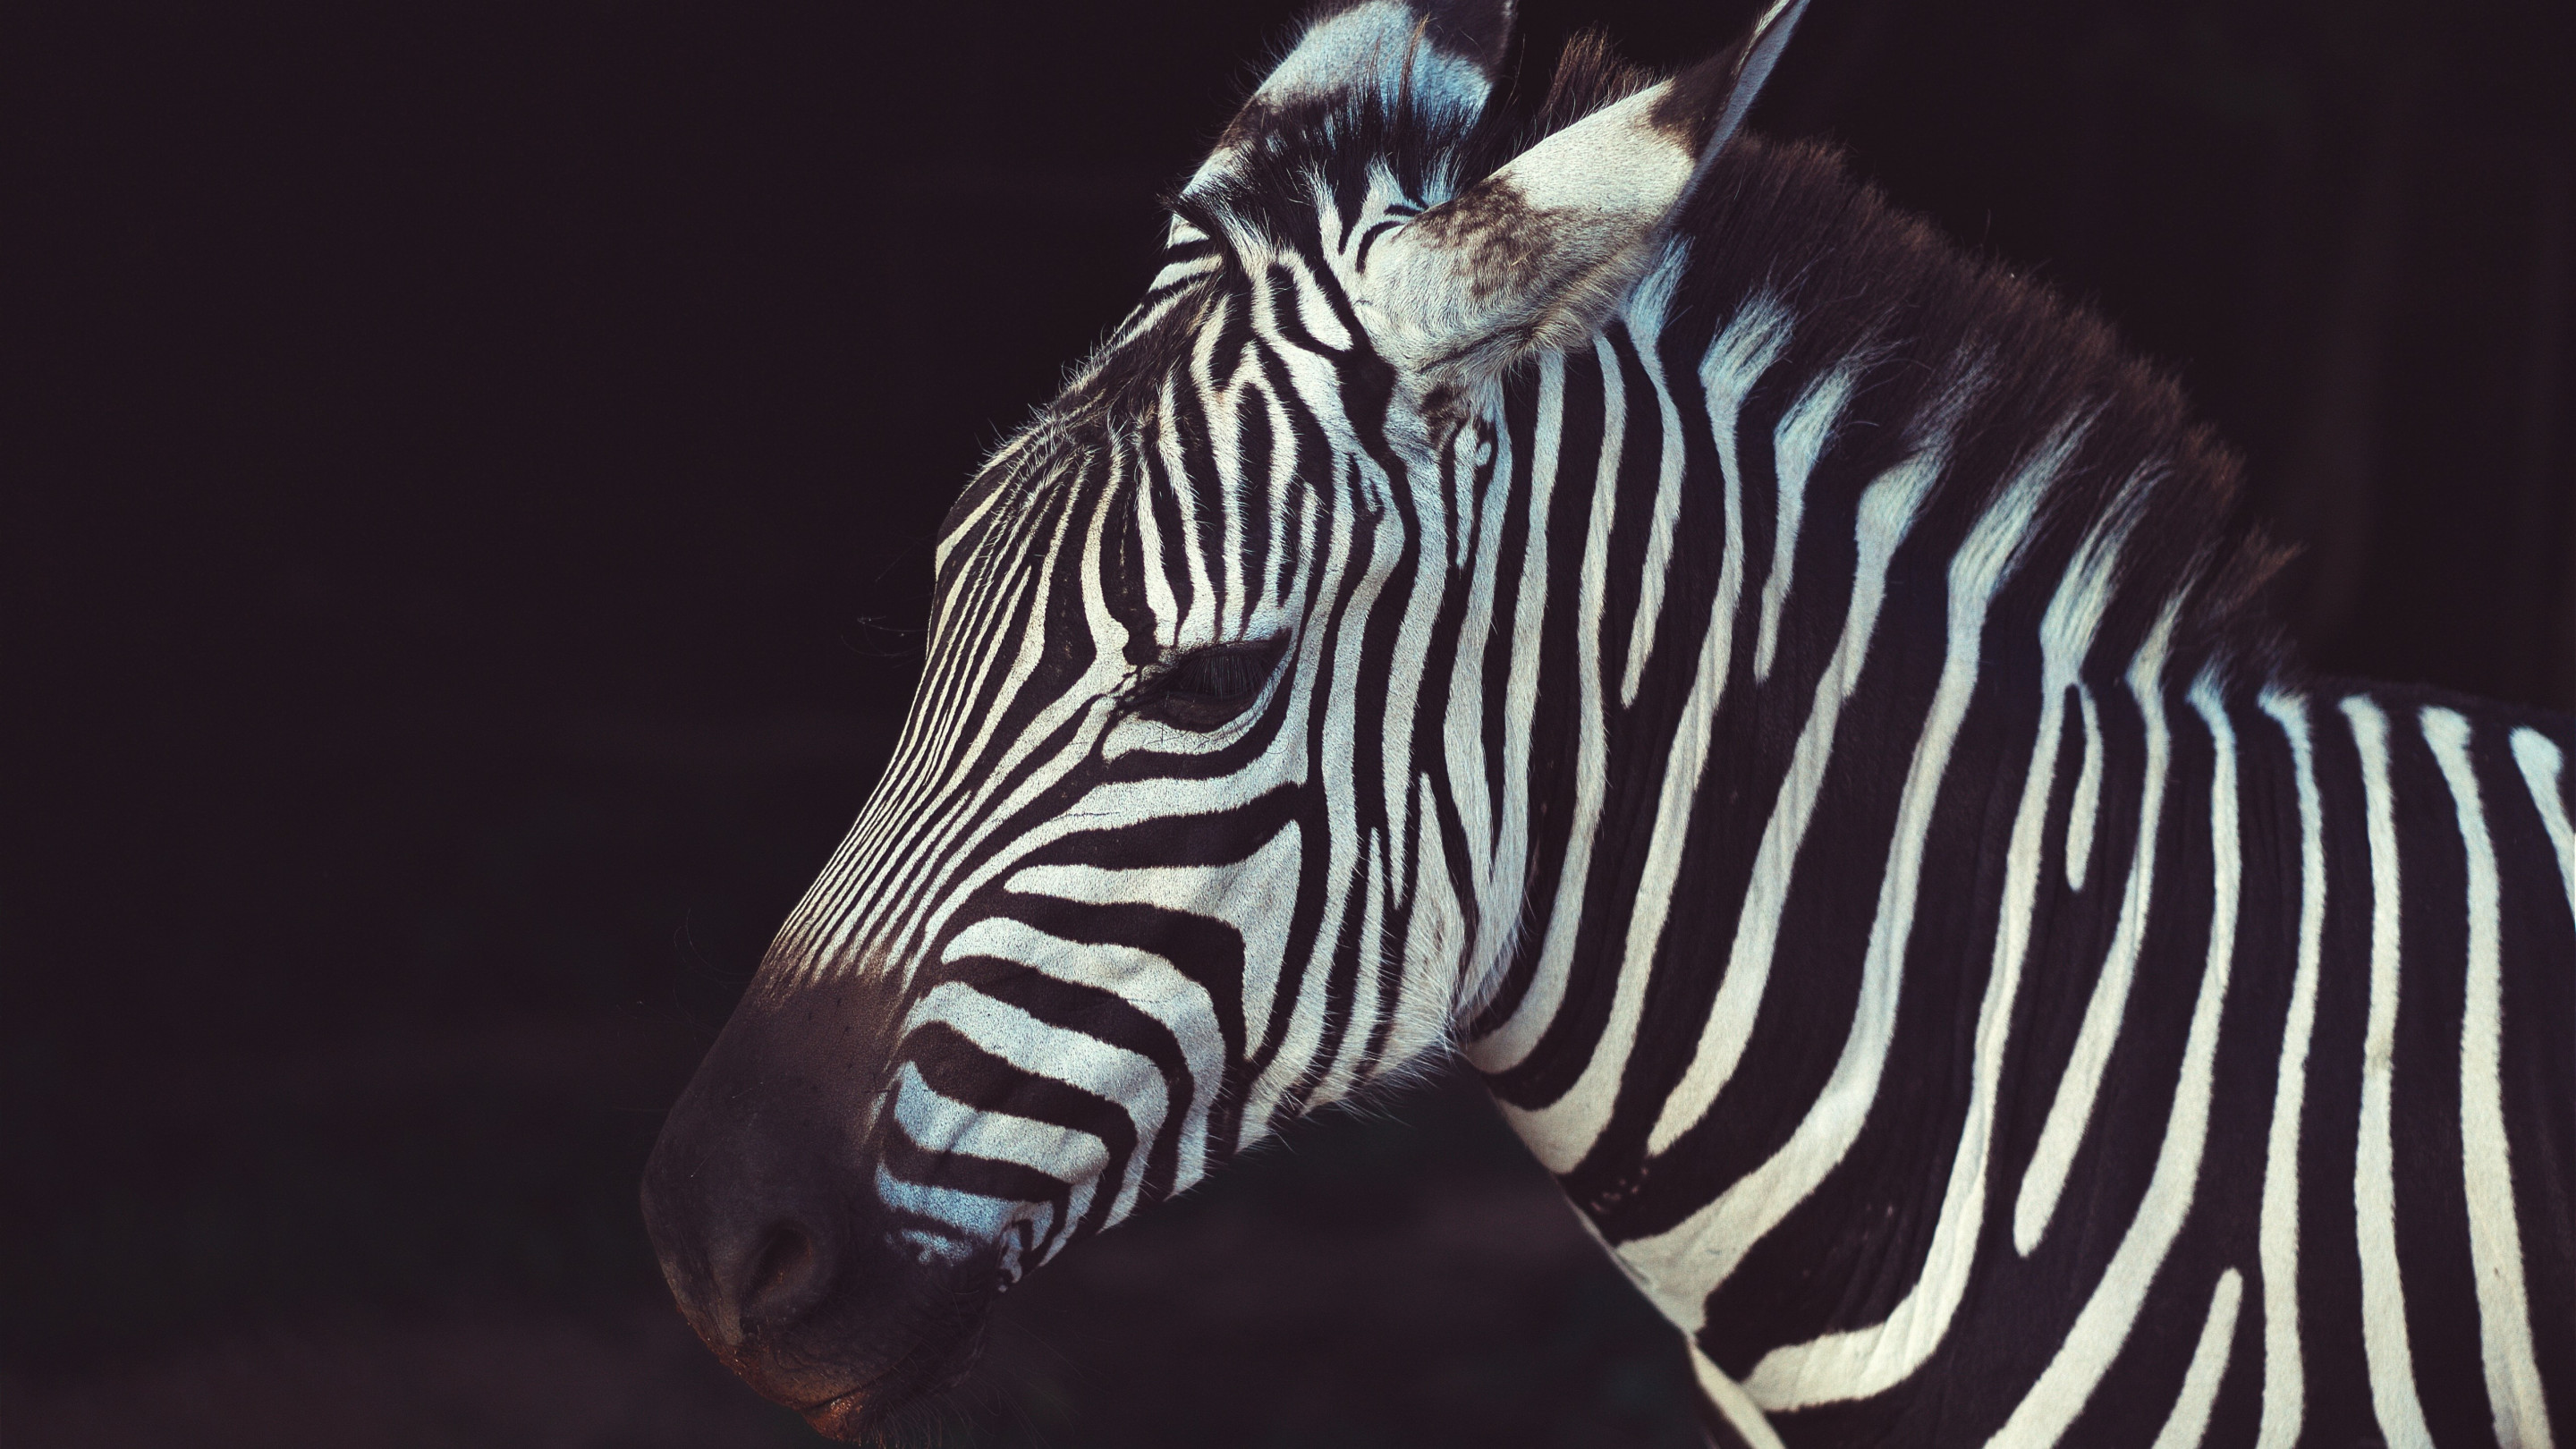 Zebra portrait from Greeneville Zoo, USA | 2880x1620 wallpaper